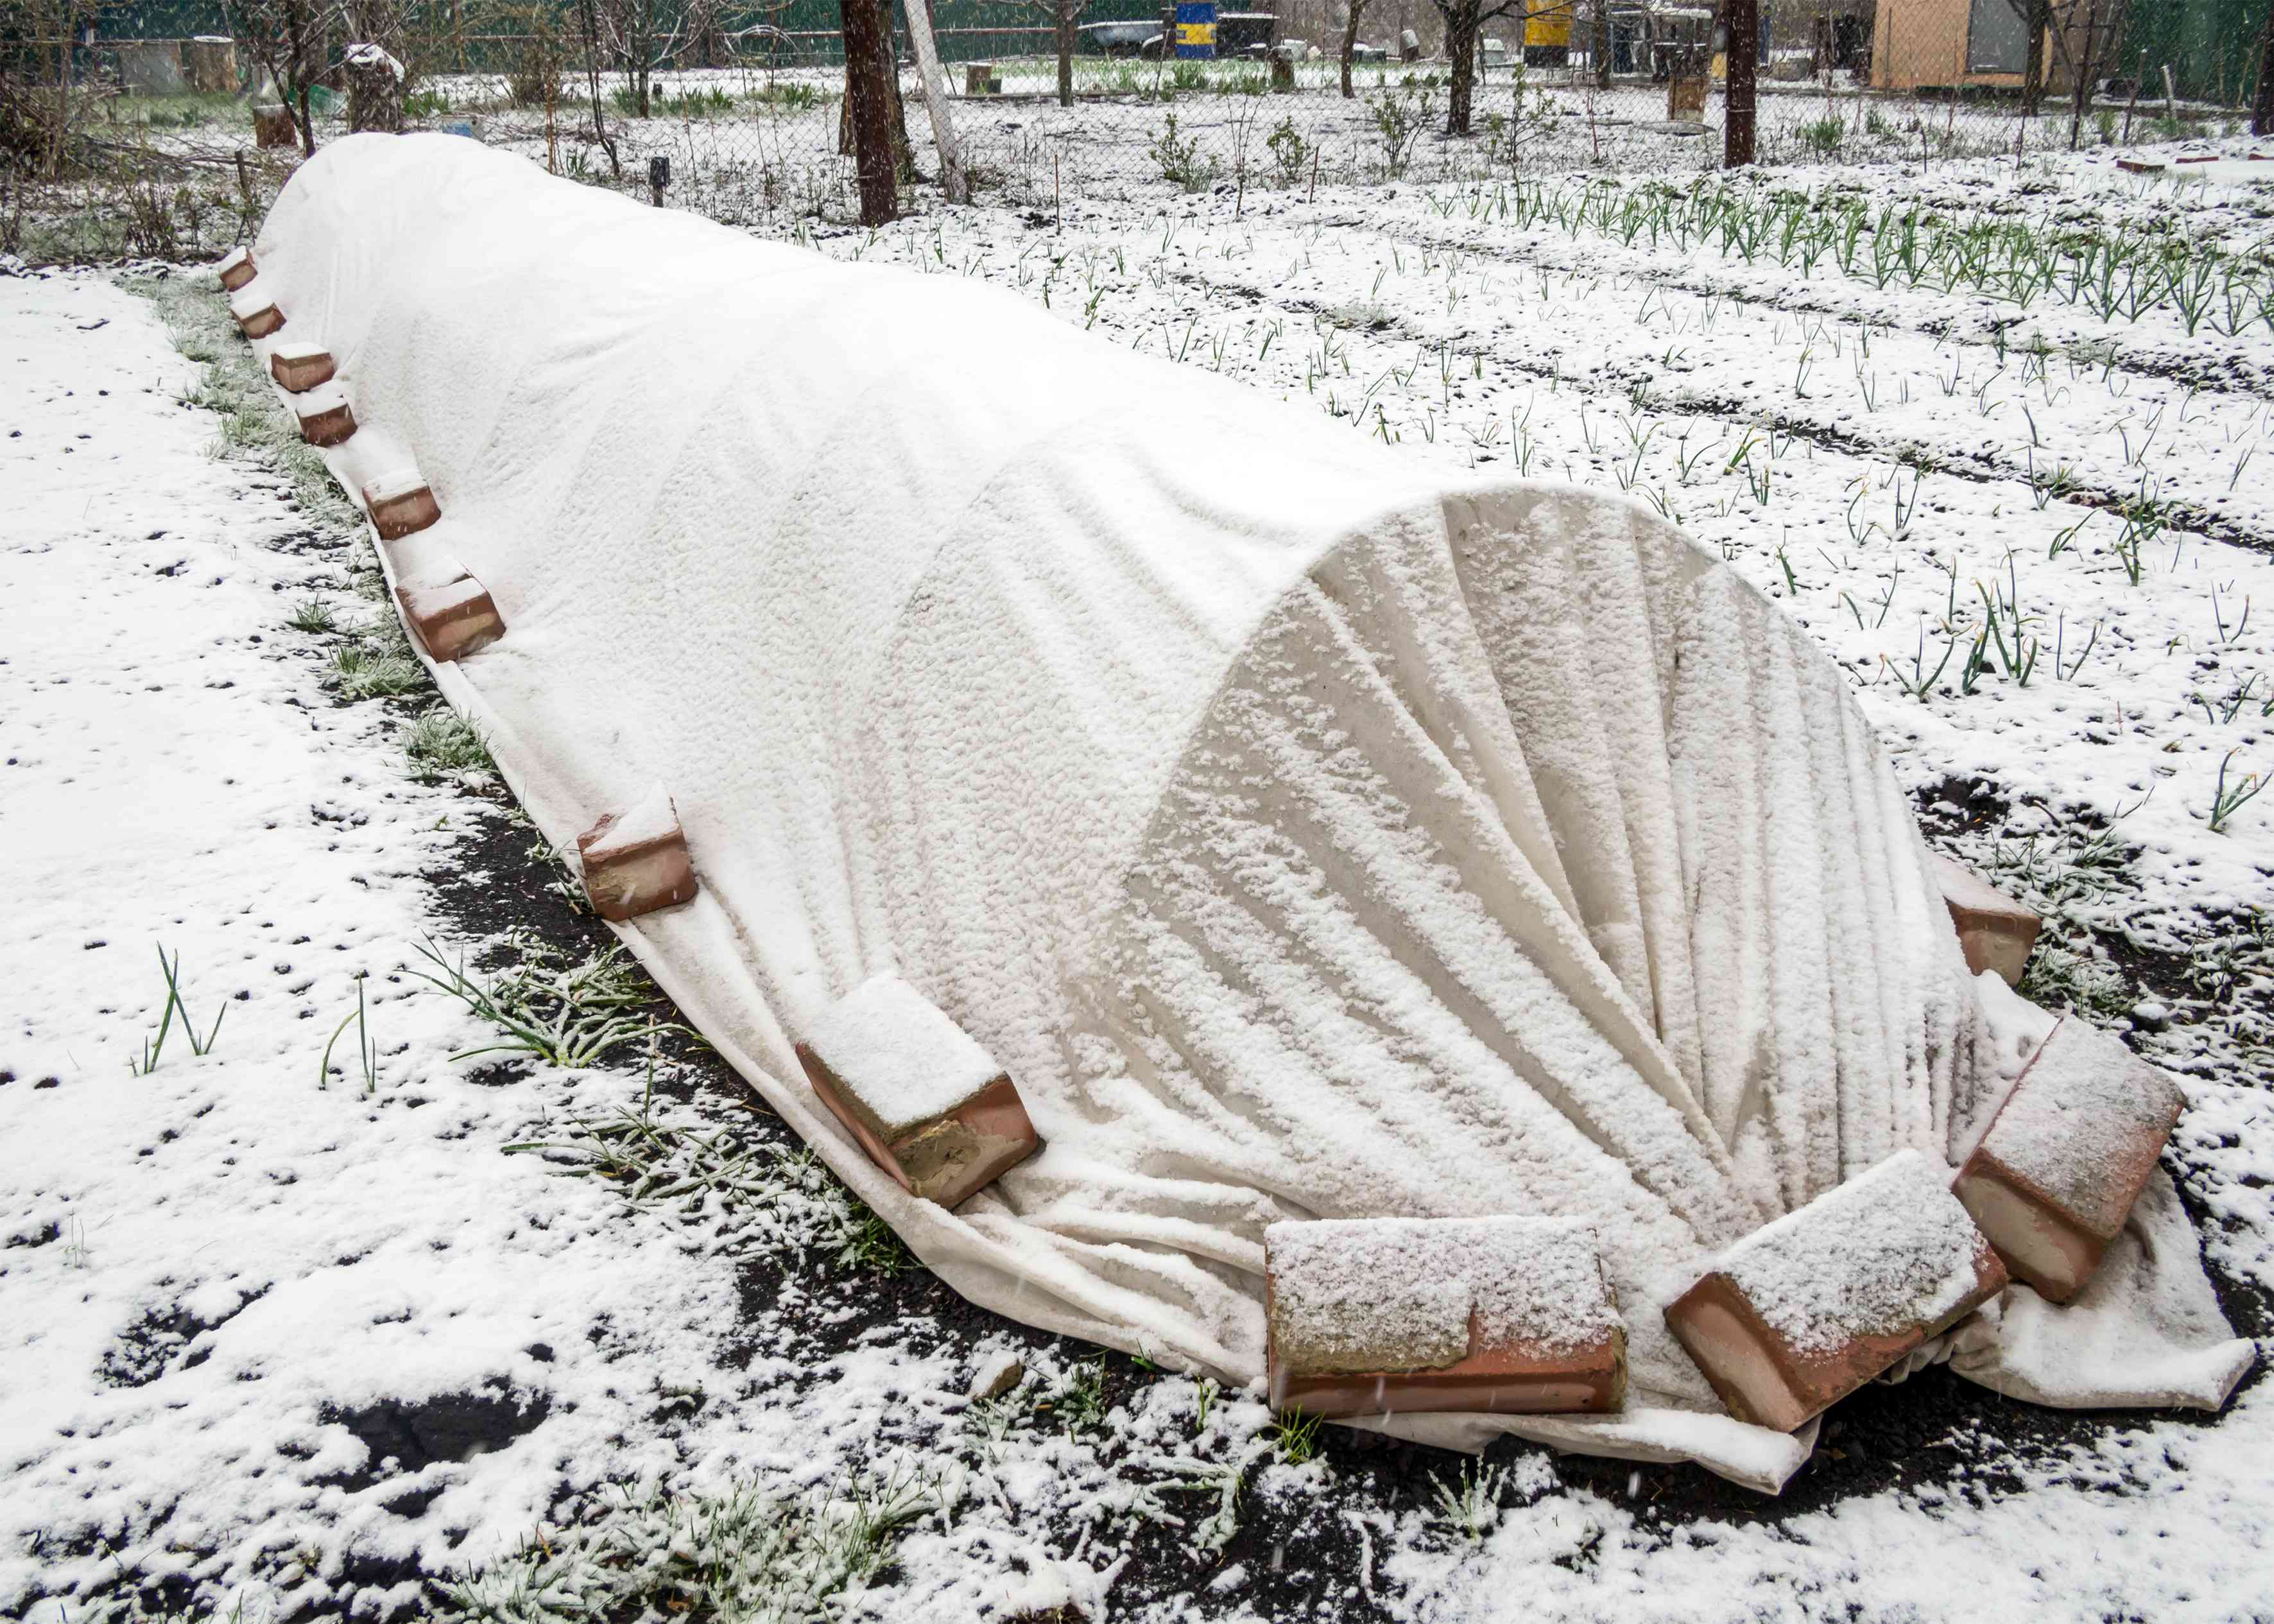 Low tunnel garden in the winter covered in snow and a blanket to keep vegetables warm.